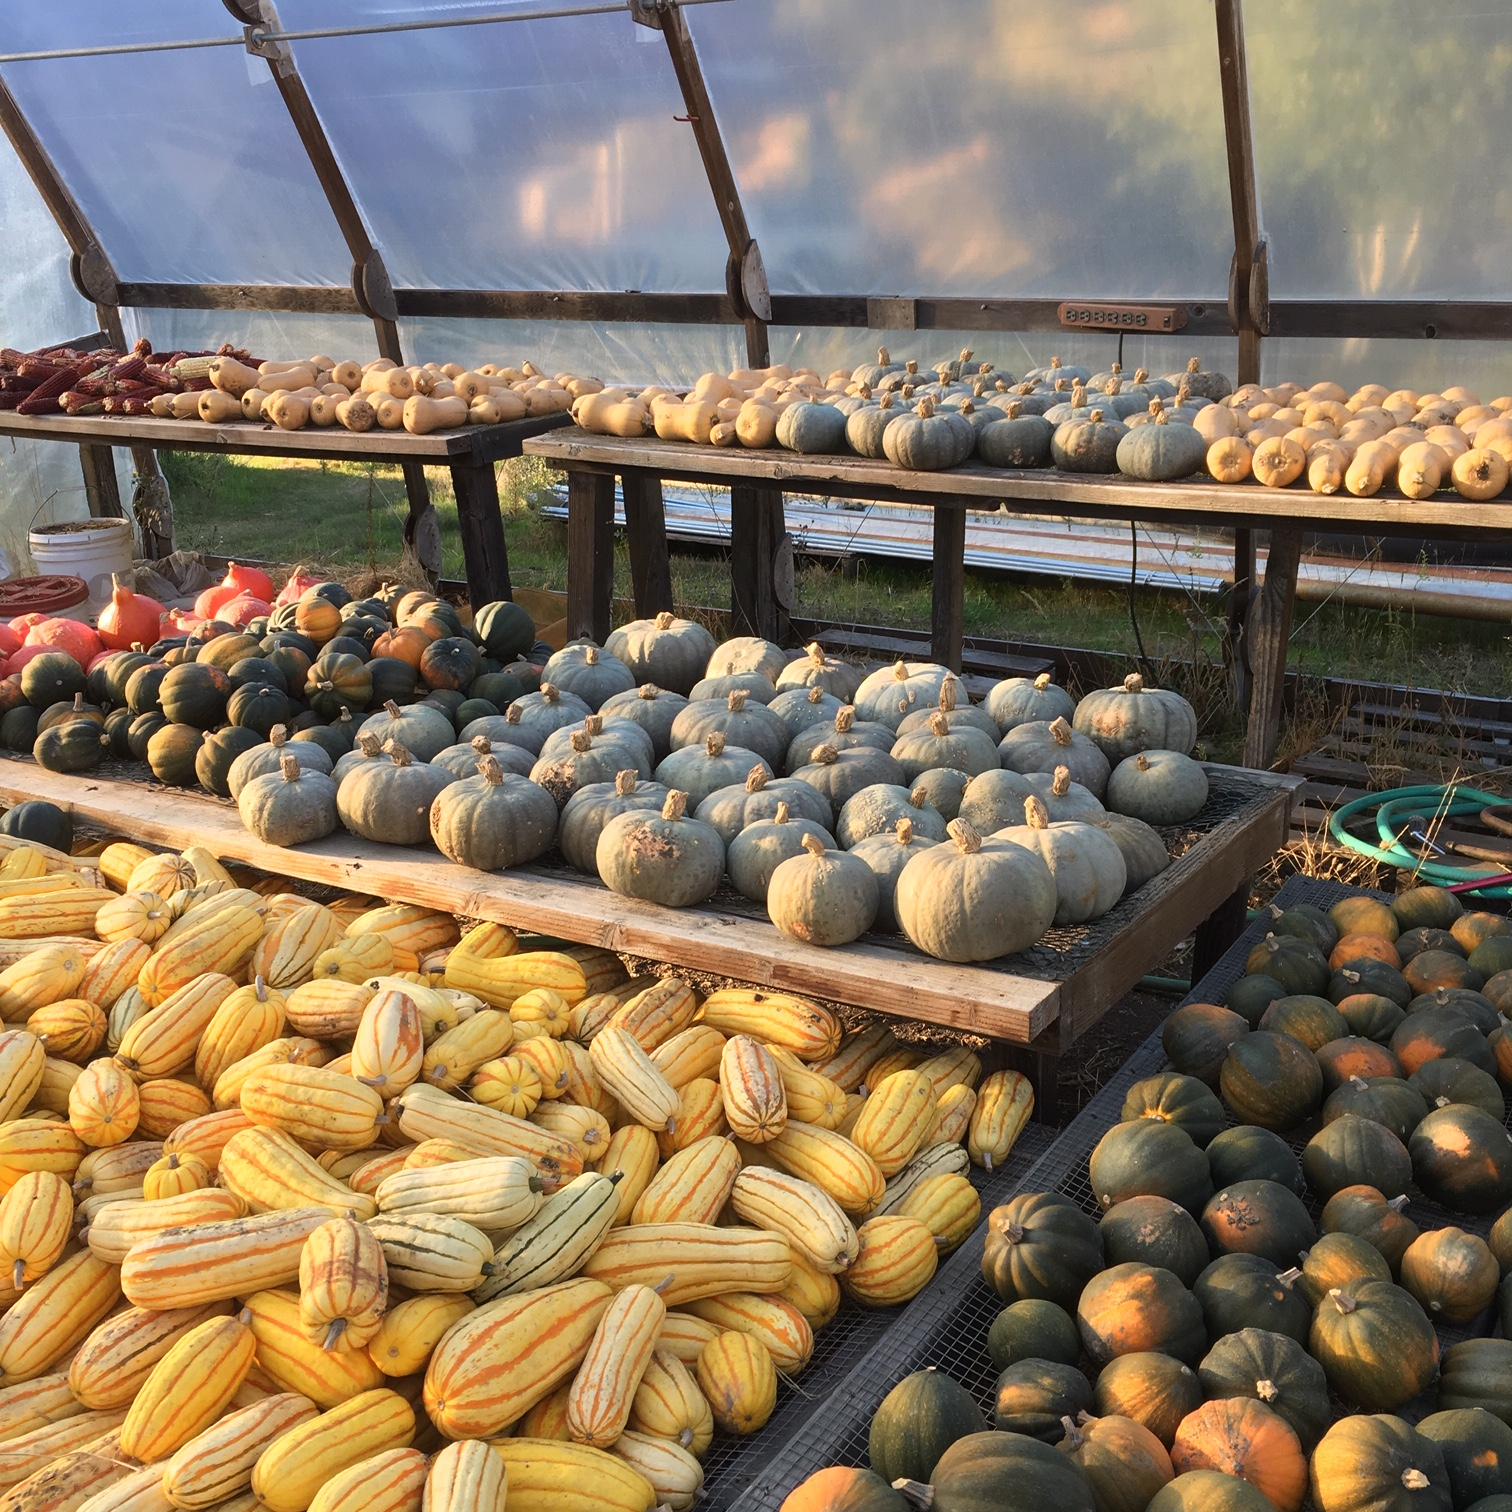 From seed to fruit, full circle. Winter squash drying in the greenhouse where they were seeded.